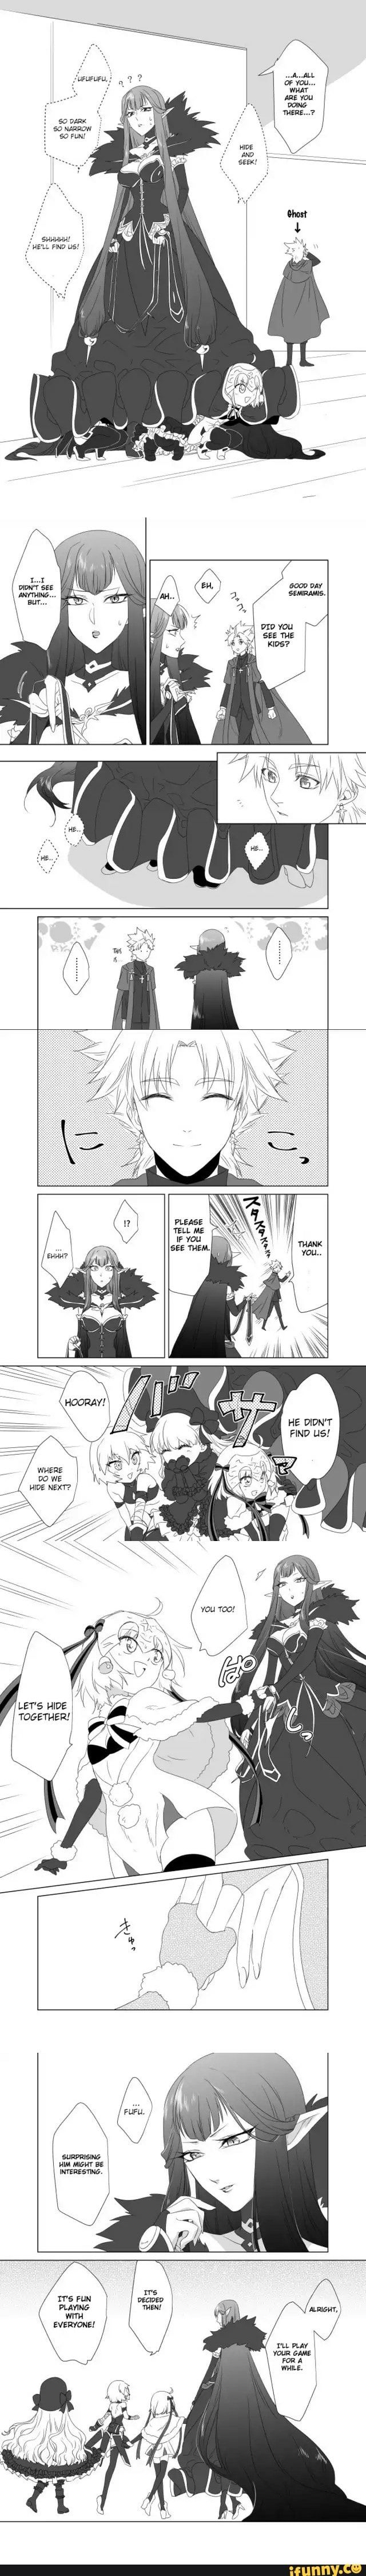 Moments like these I love the fate series. A serial killer, a saint, and a book hiding under a queens cloak